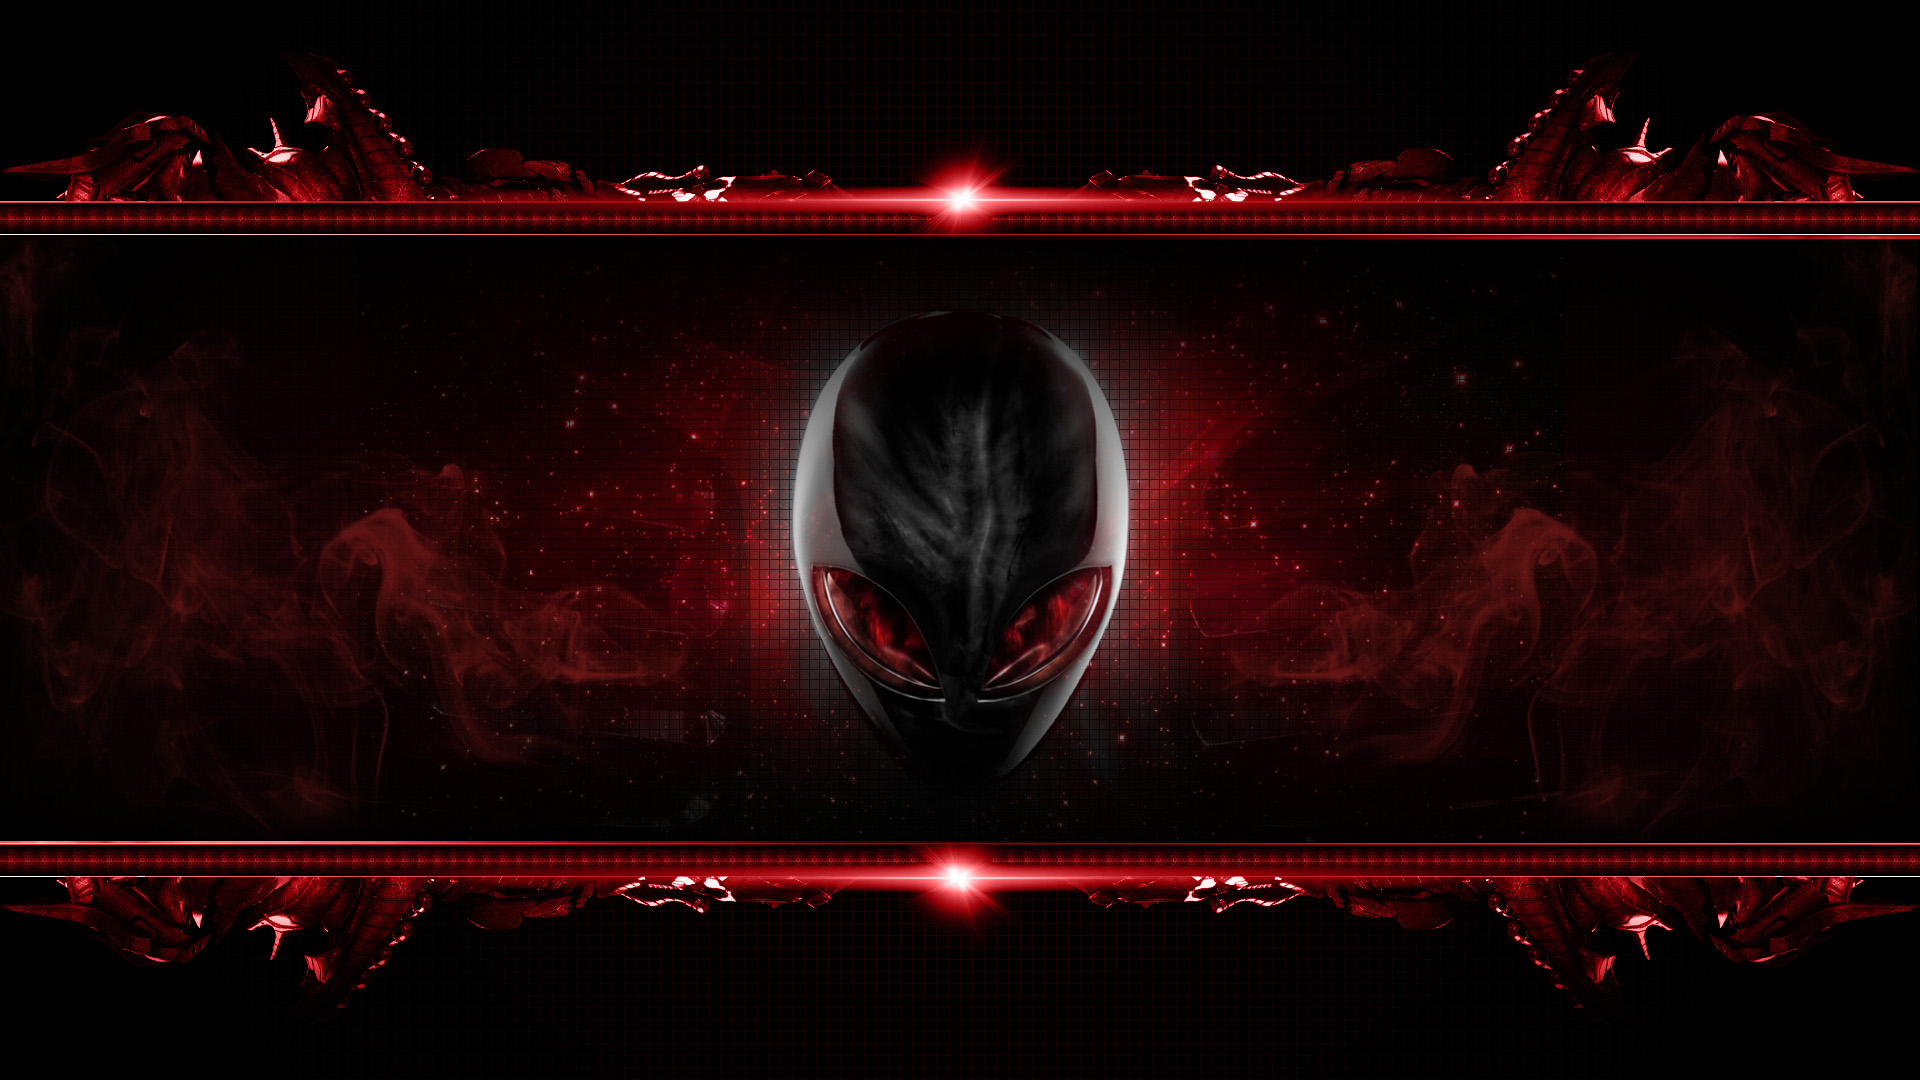 alienware full hd wallpaper and background image | 1920x1080 | id:223719